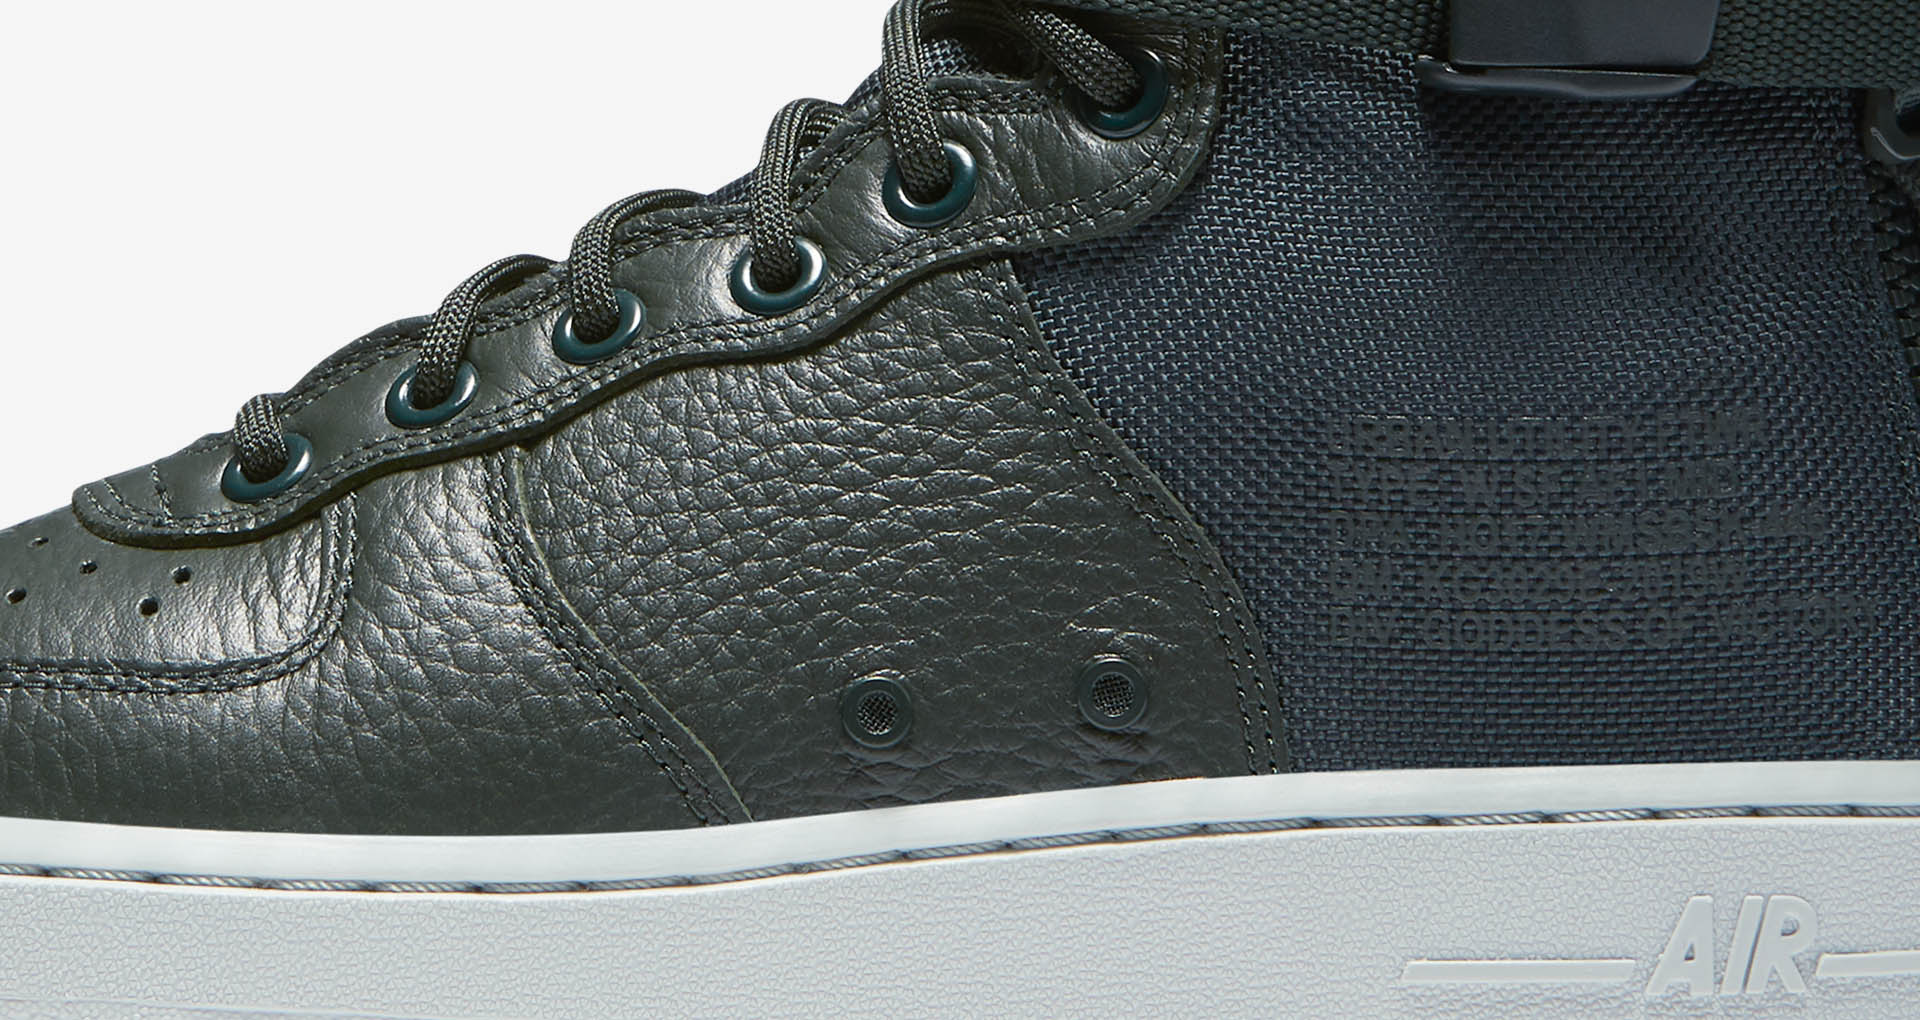 01-nike-womens-sf-af1-mid-outdoor-green-light-pumice-aa3966-300